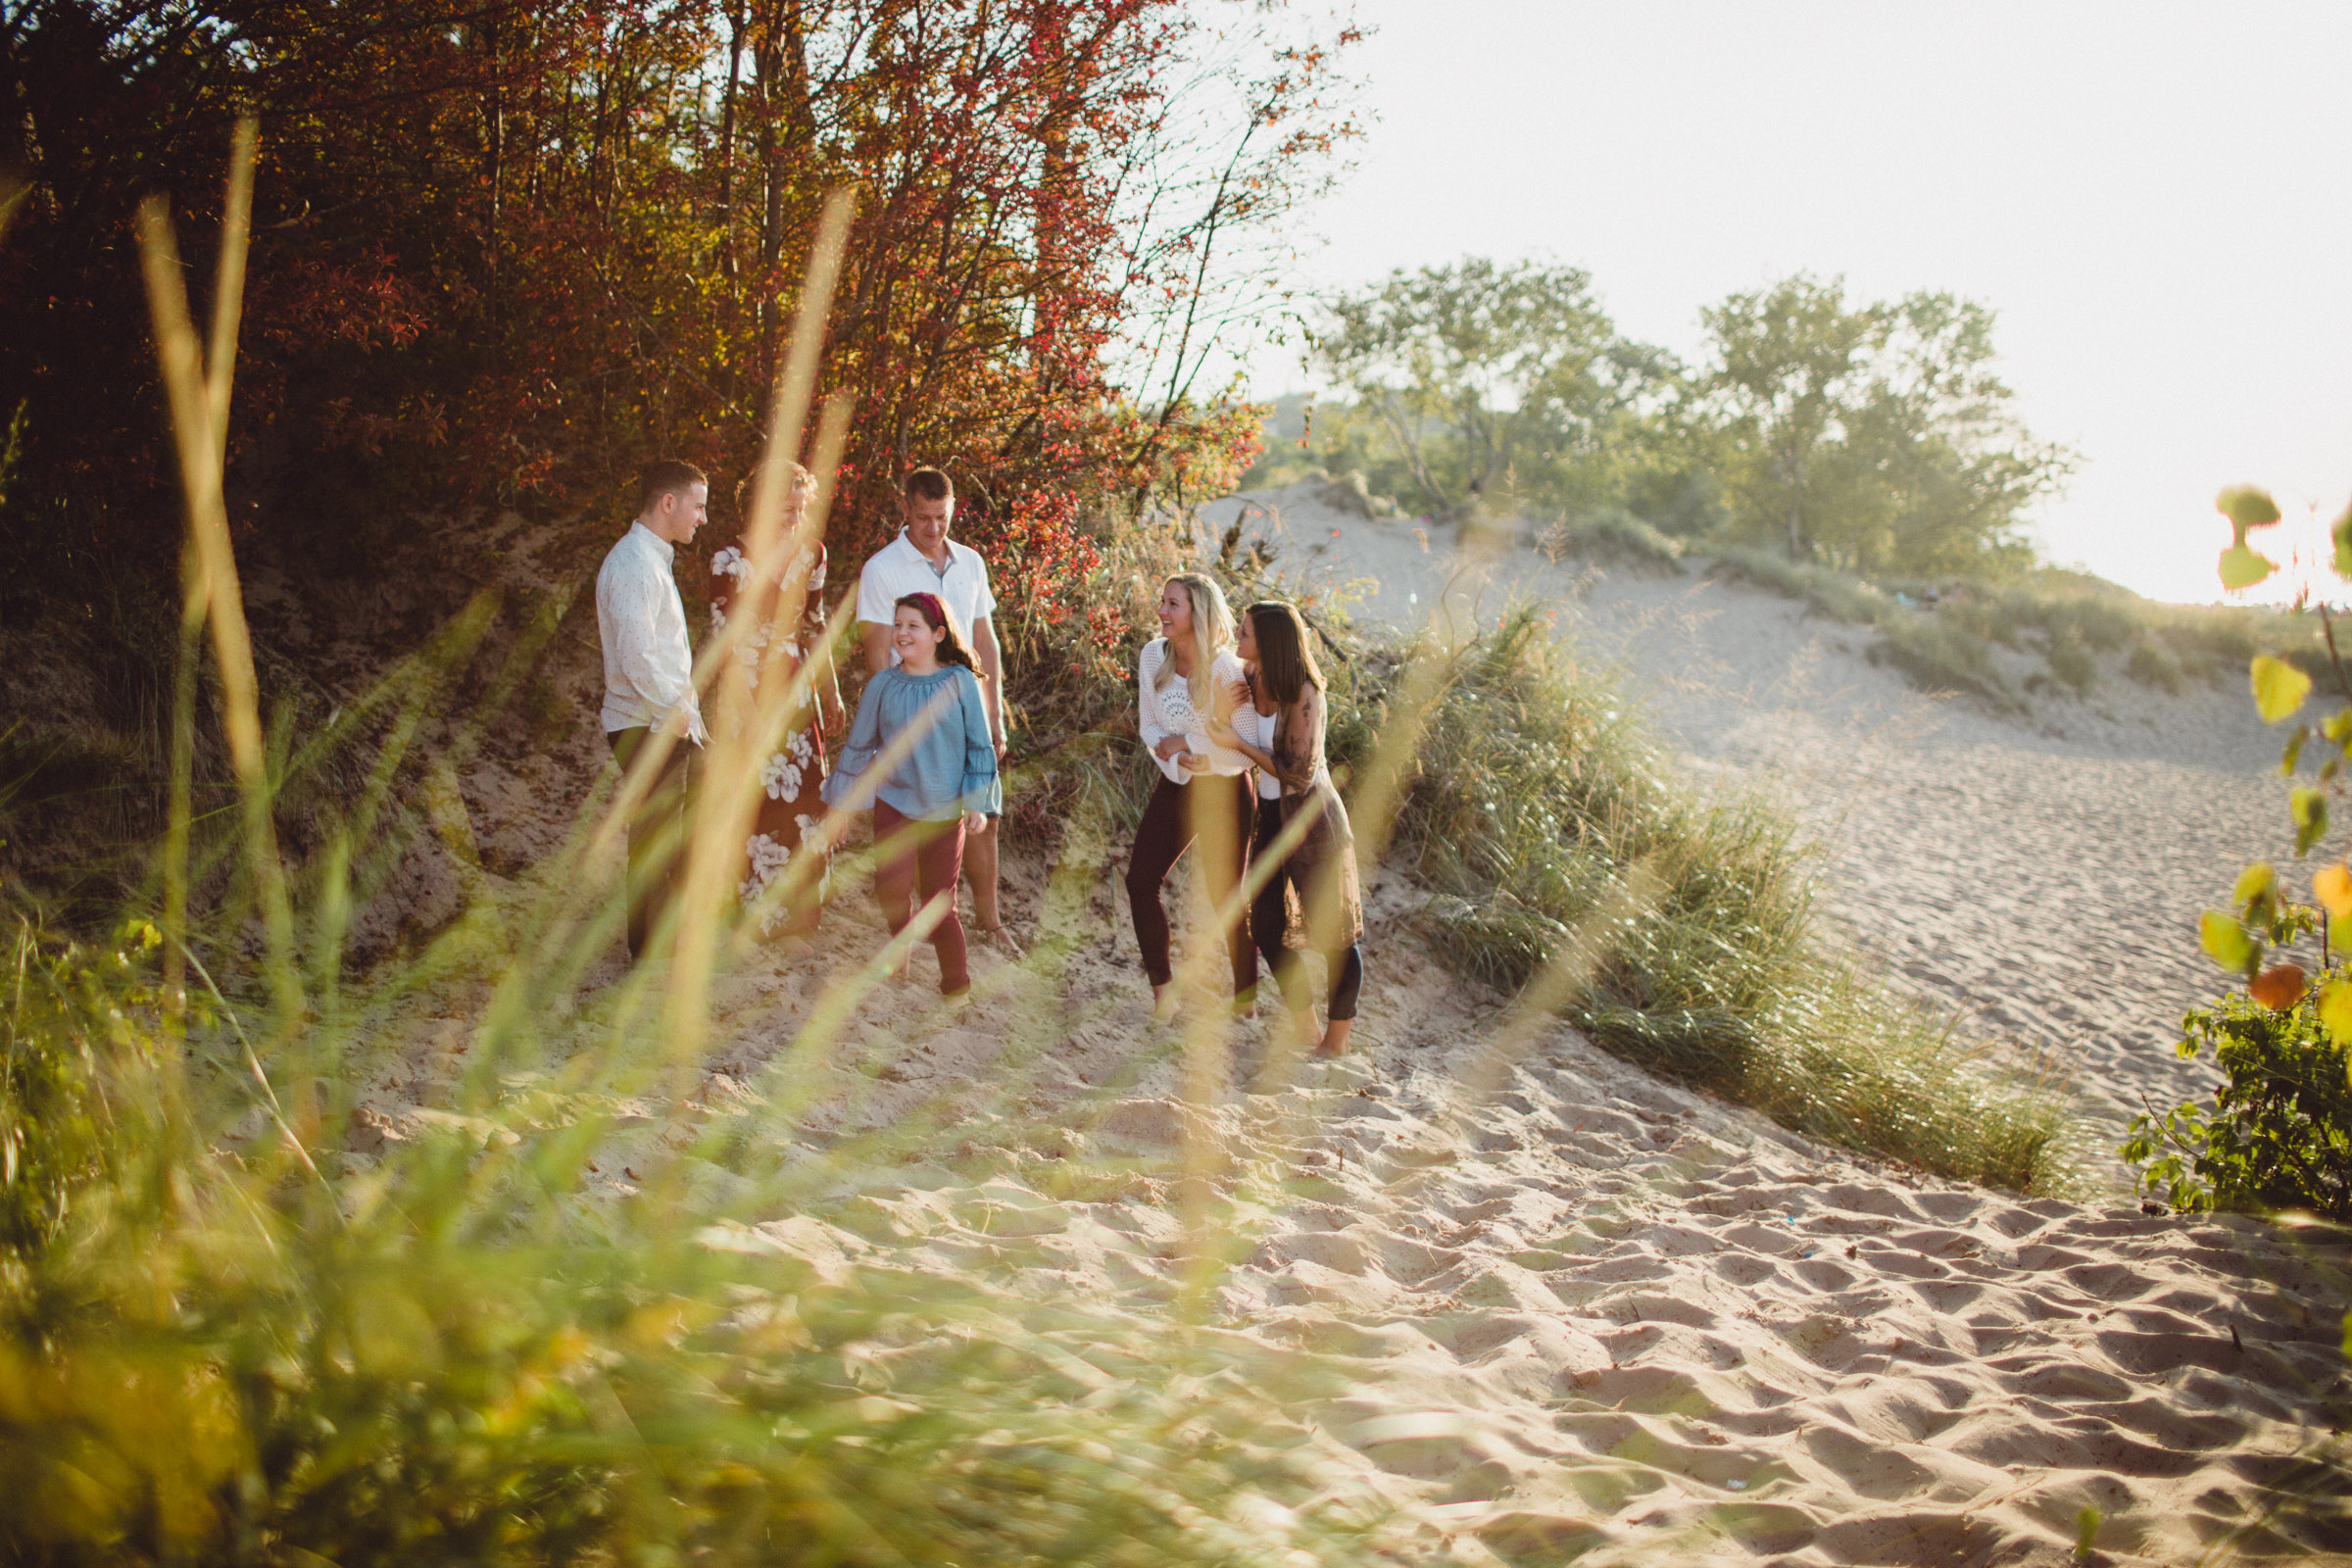 family connecting and interacting on beach, image shot through leaves